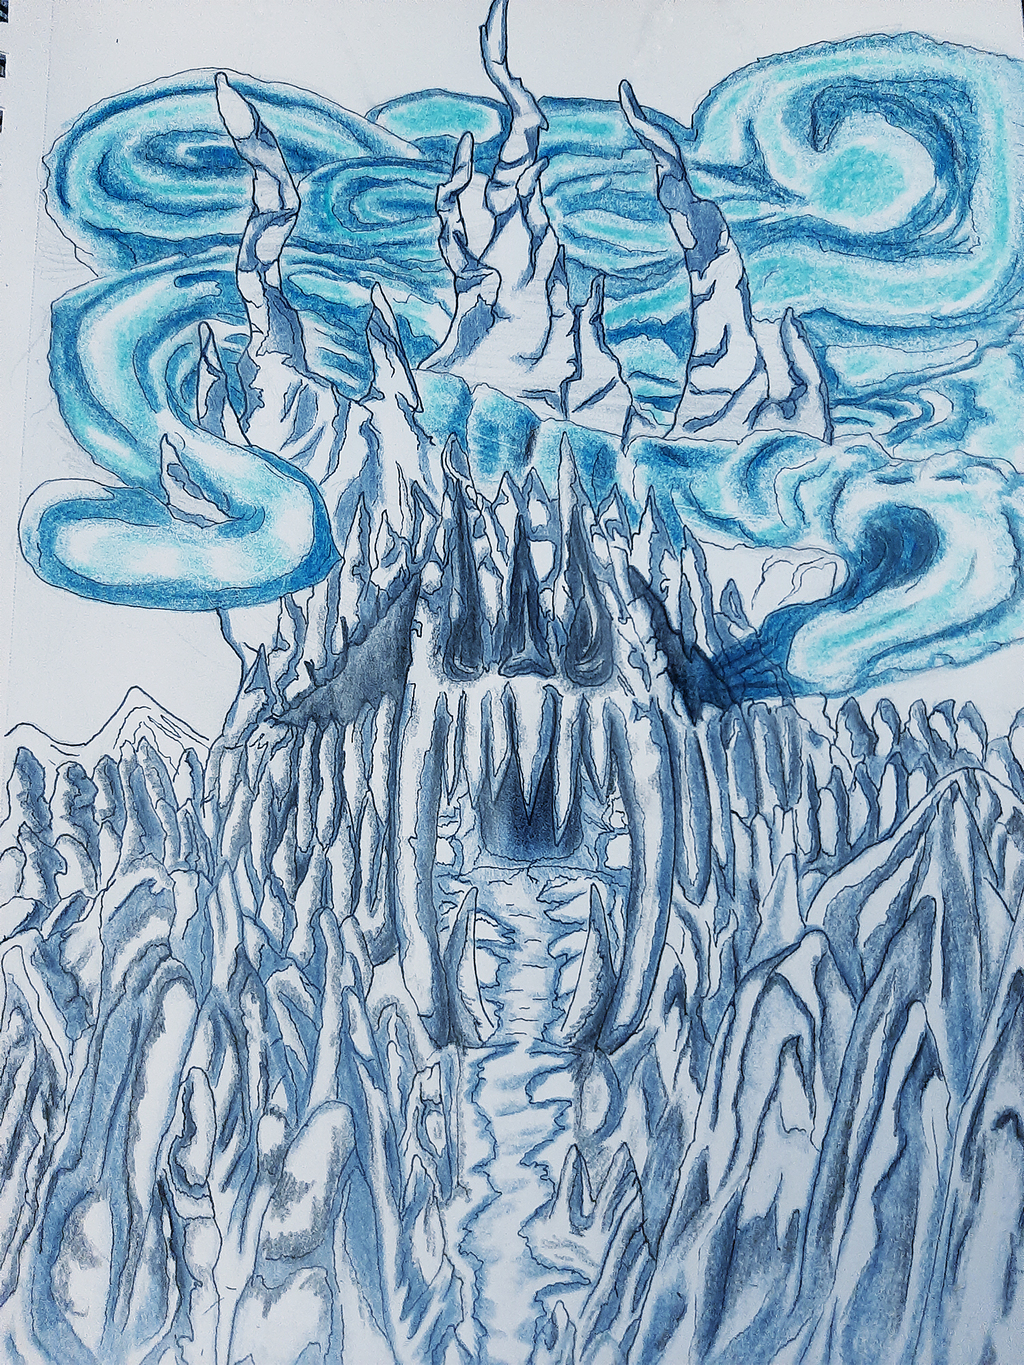 Most recent image: Concept - Ice Dragon Cave with Color